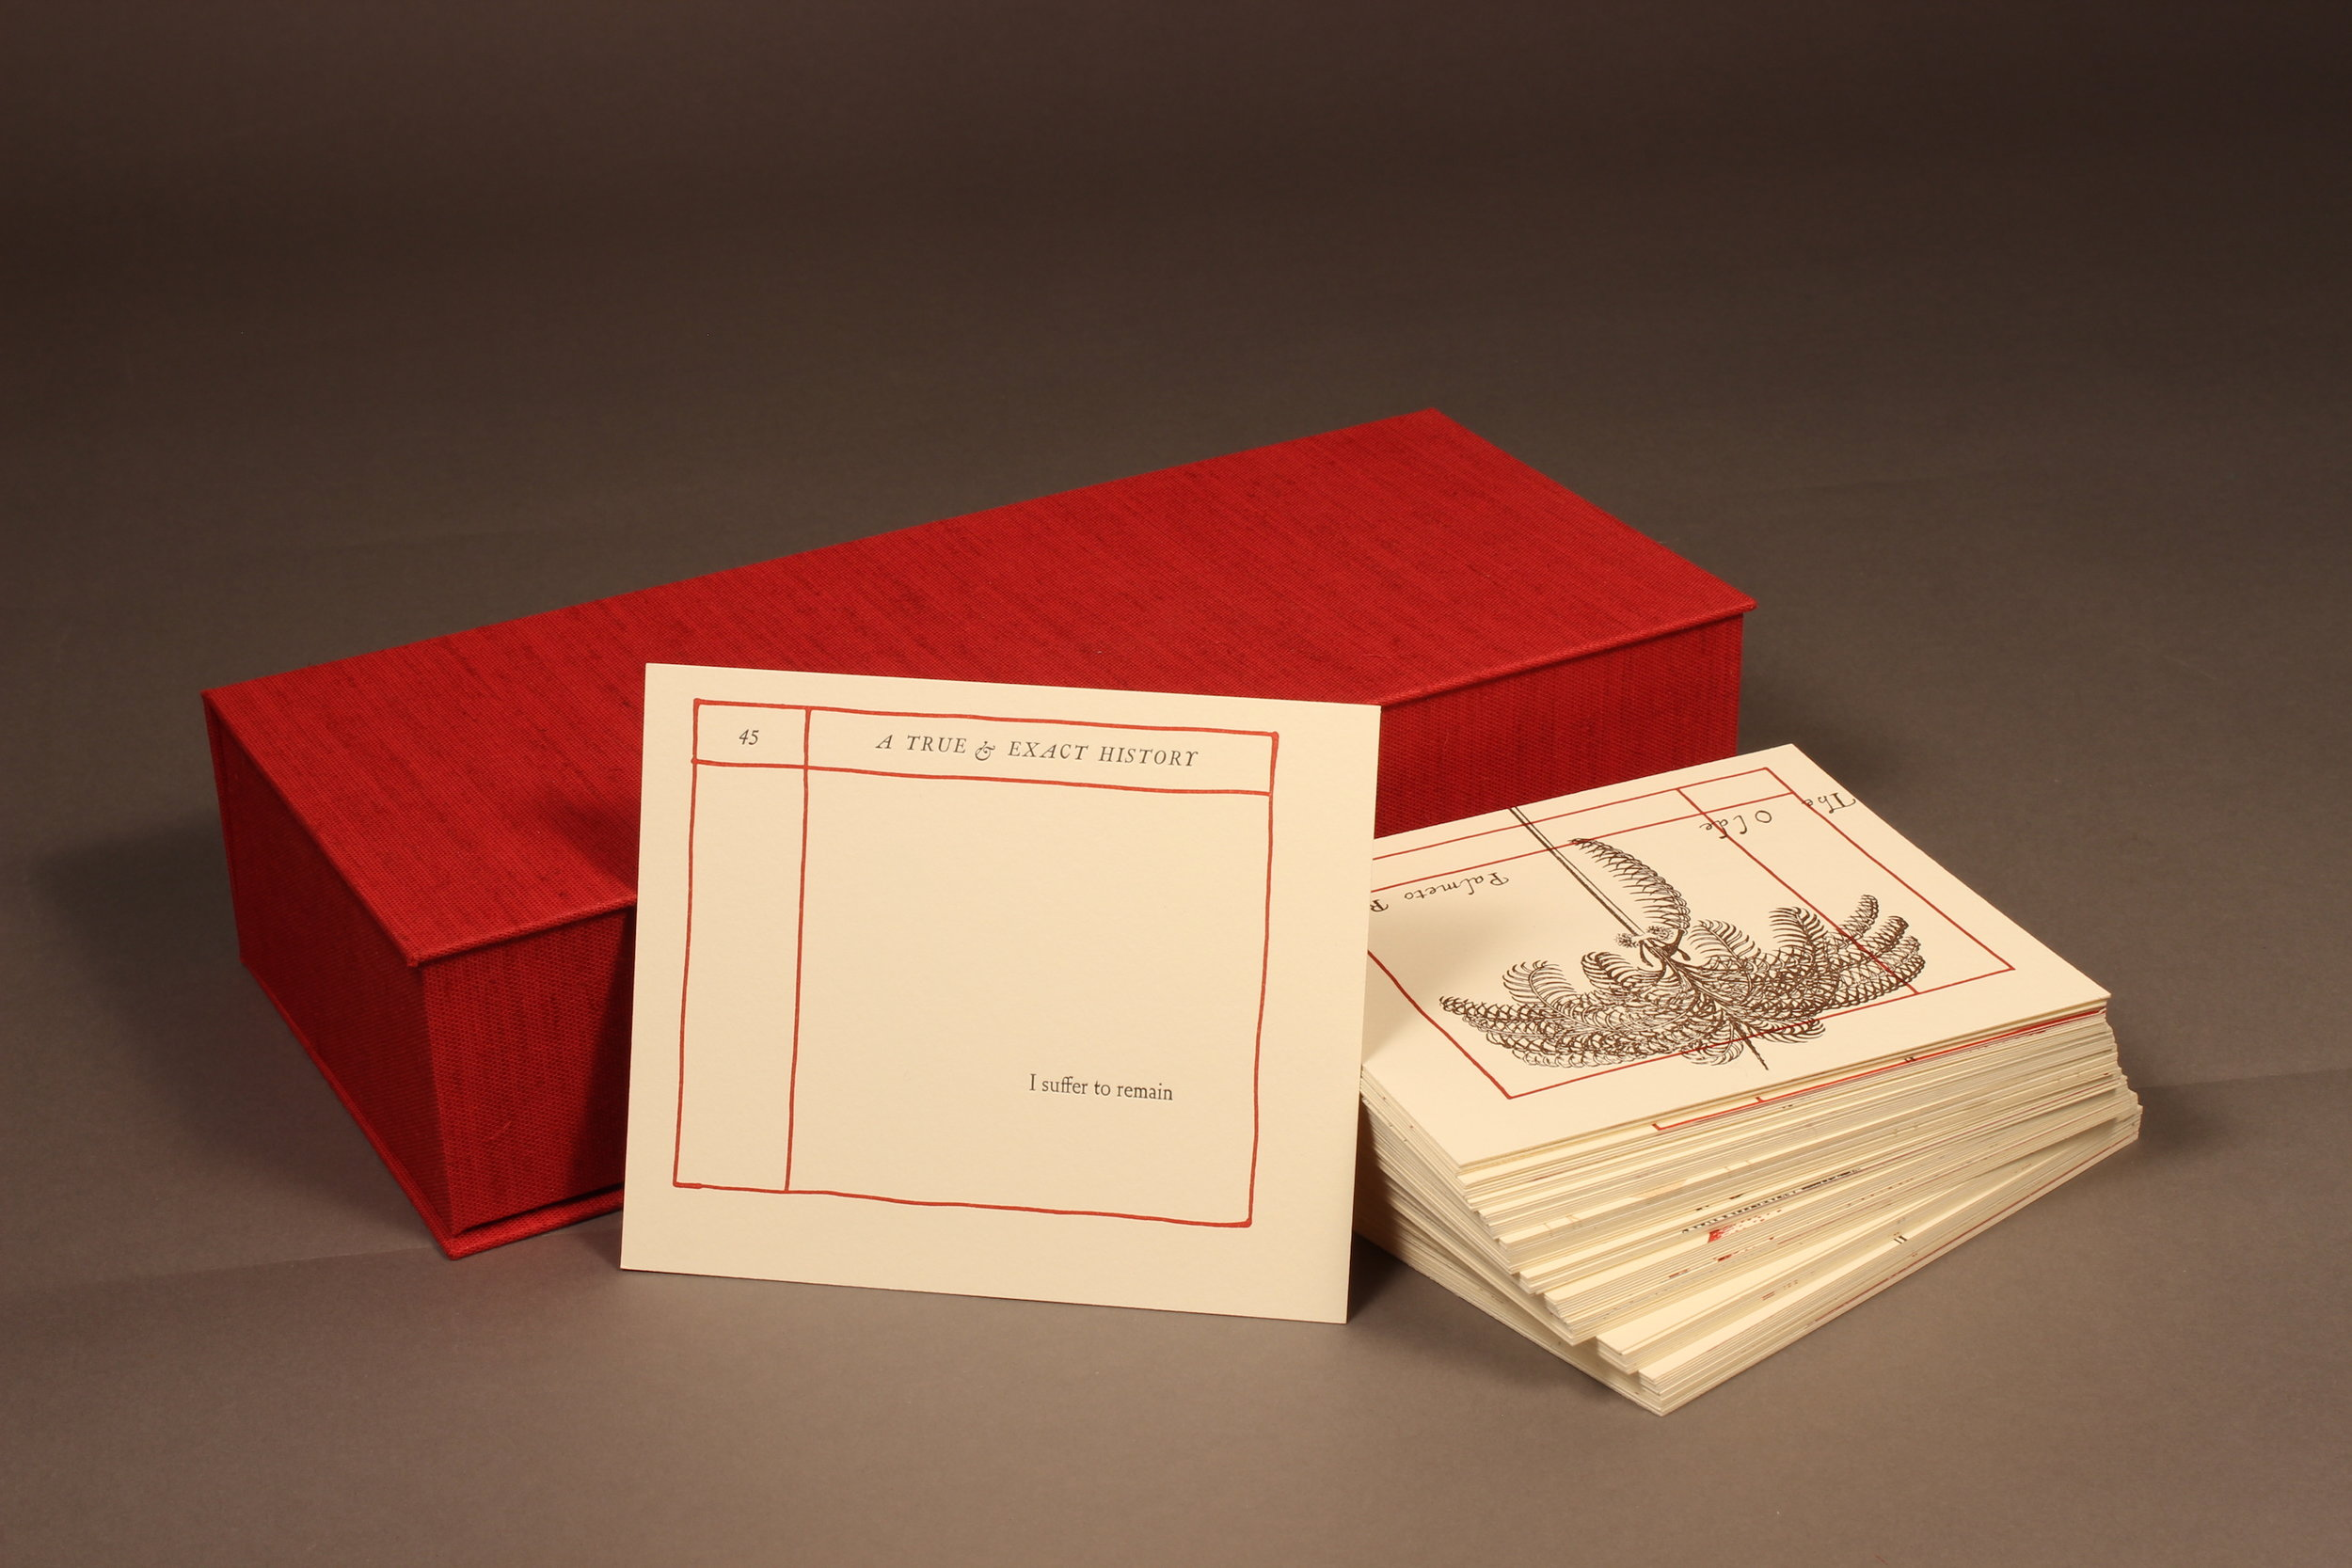 """""""A True & Exact History"""" (2018), Sonia Farmer, letterpress printed book, Erasure of Richard Ligon's """"A True & Exact History of the Island of Barbadoes"""" (1657), letterpress-printed and collected into a handmade clamshell box measured, 5.5"""" x 13"""" (closed box). Edition of 25. Image courtesy of Sonia Farmer."""